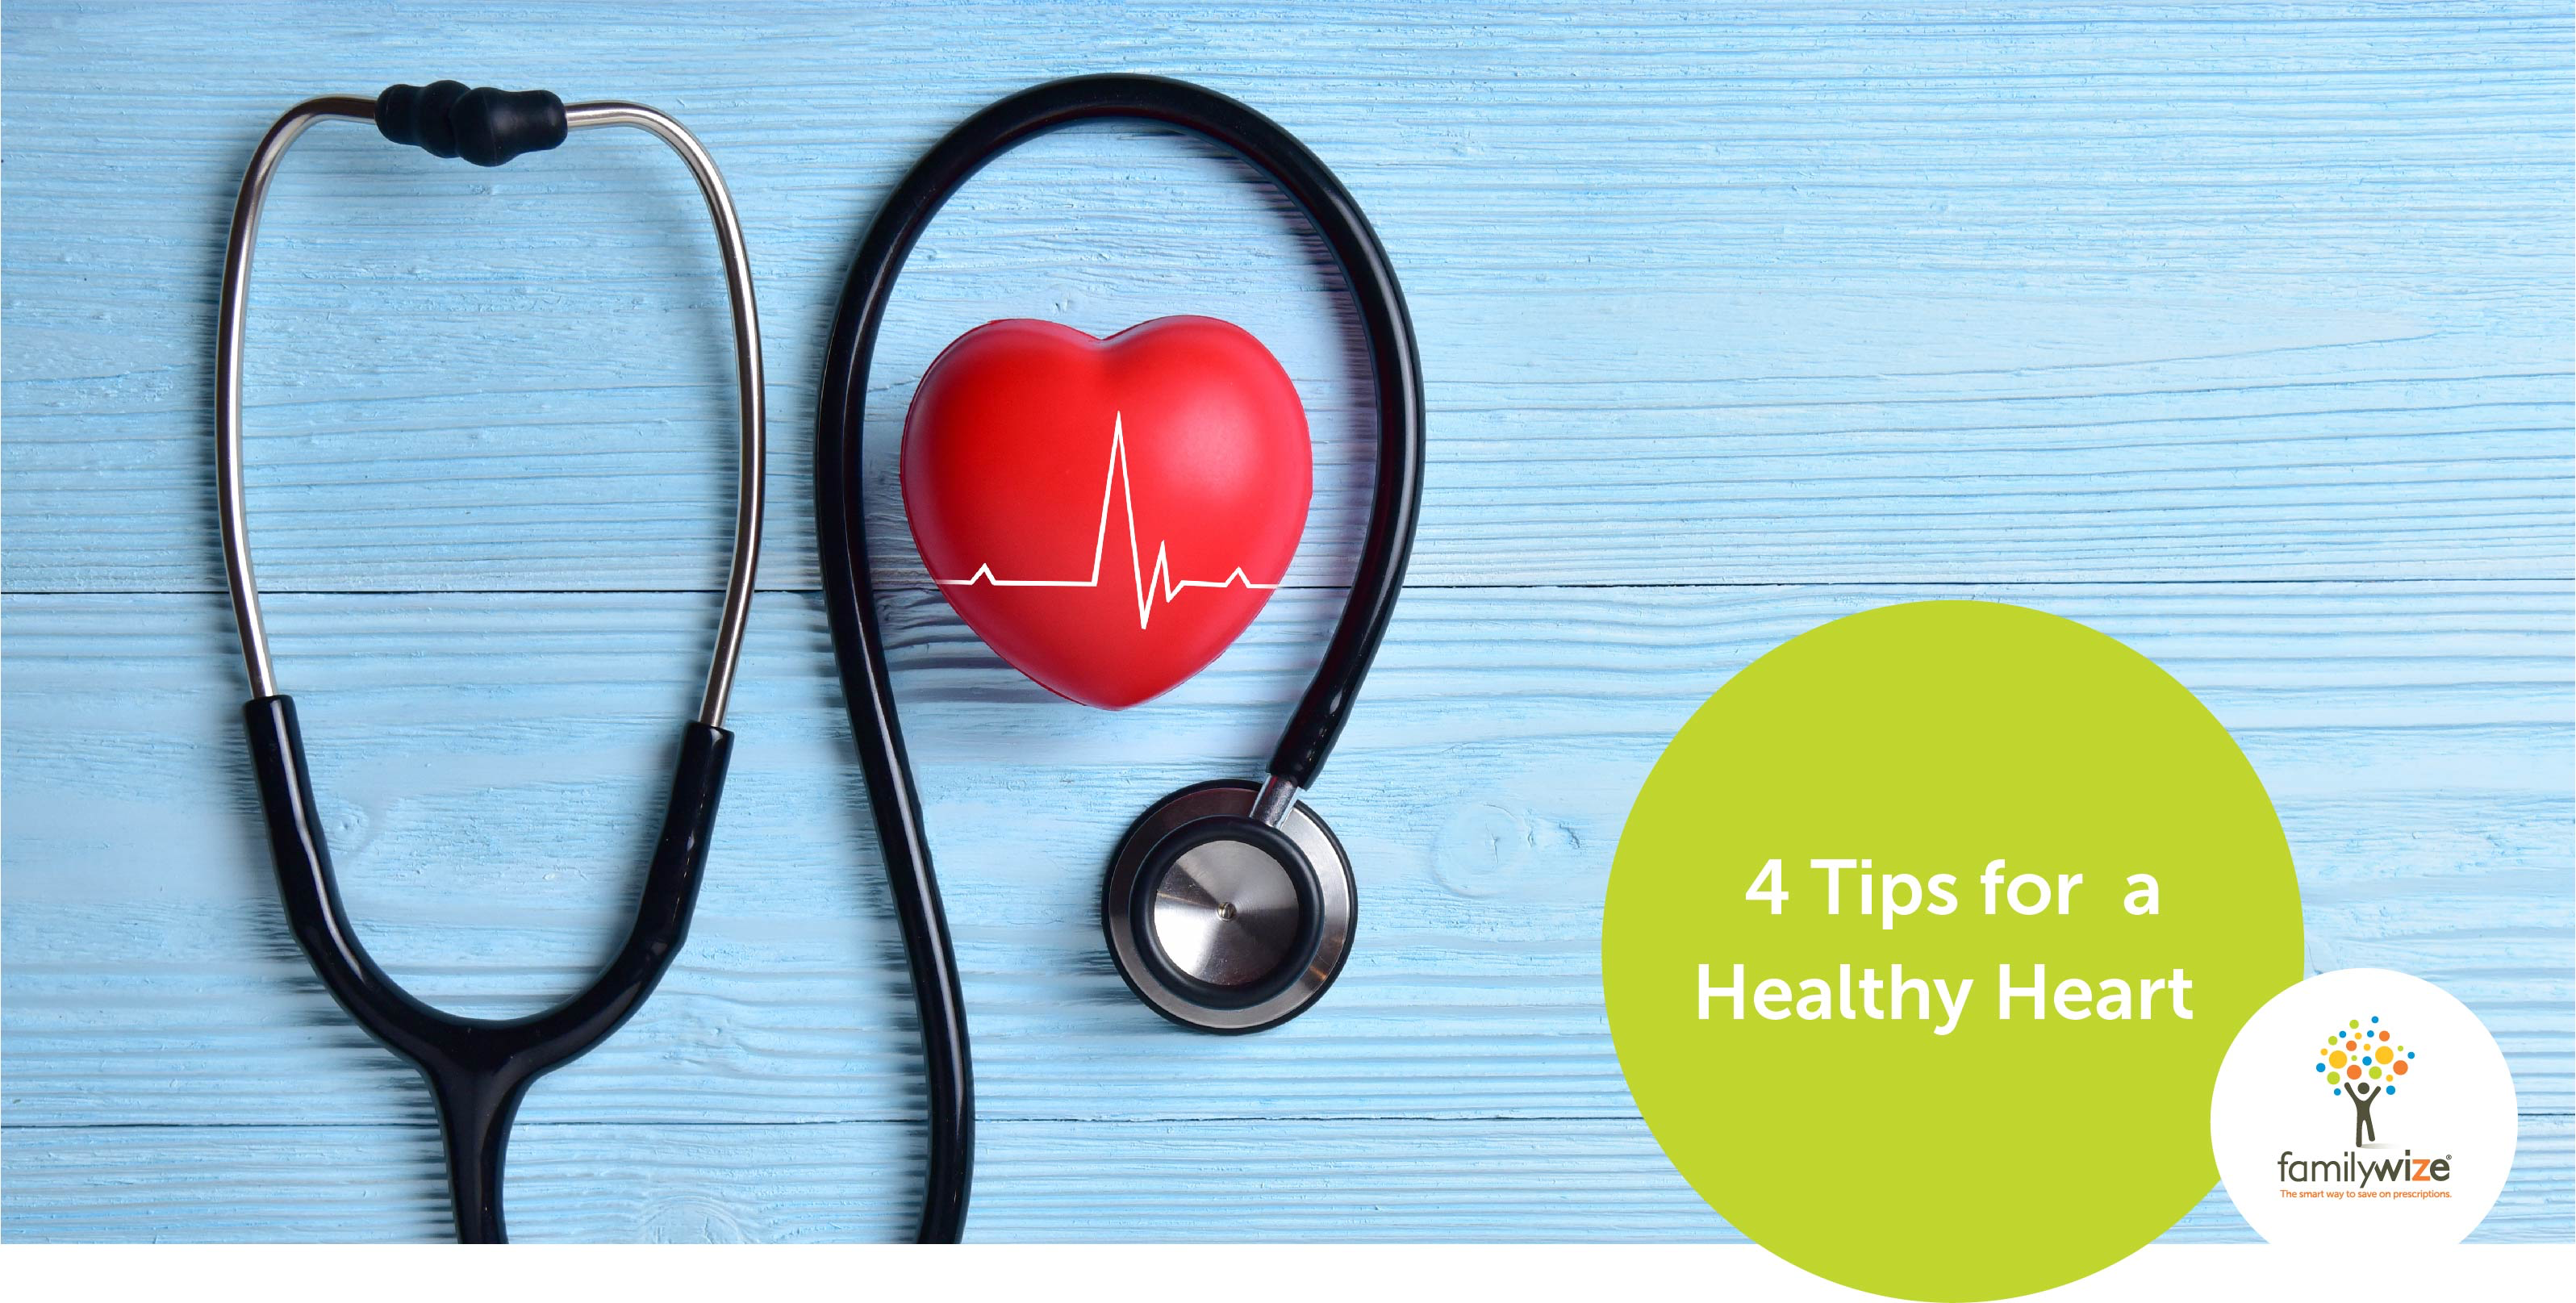 4 Tips for a Healthy Heart